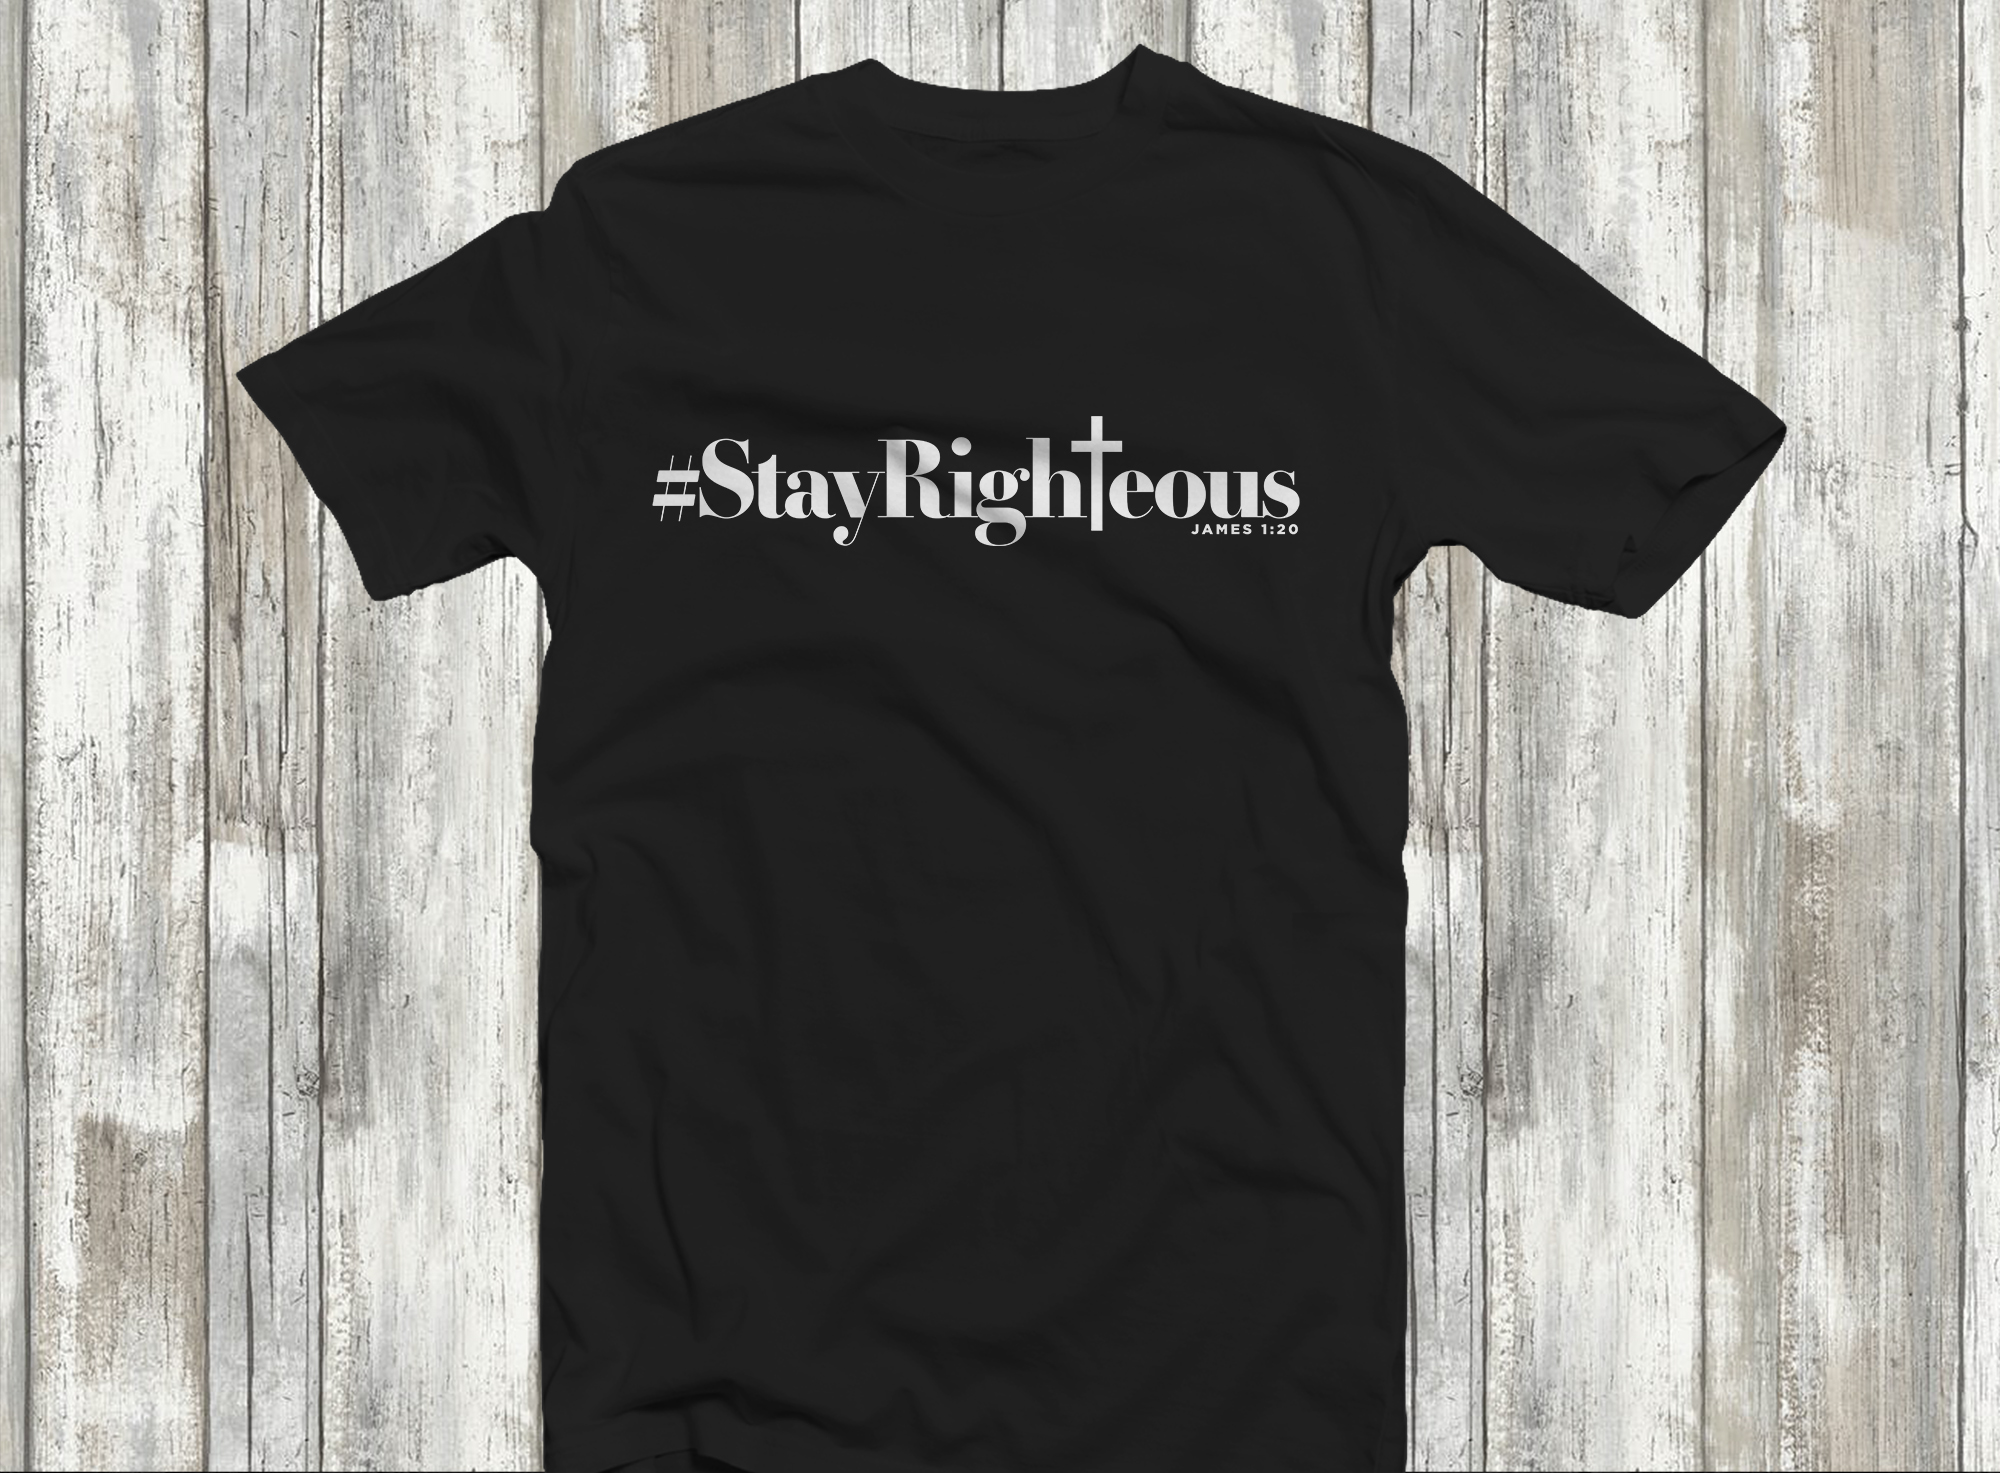 Tina B StayRighteous Tee.JPG